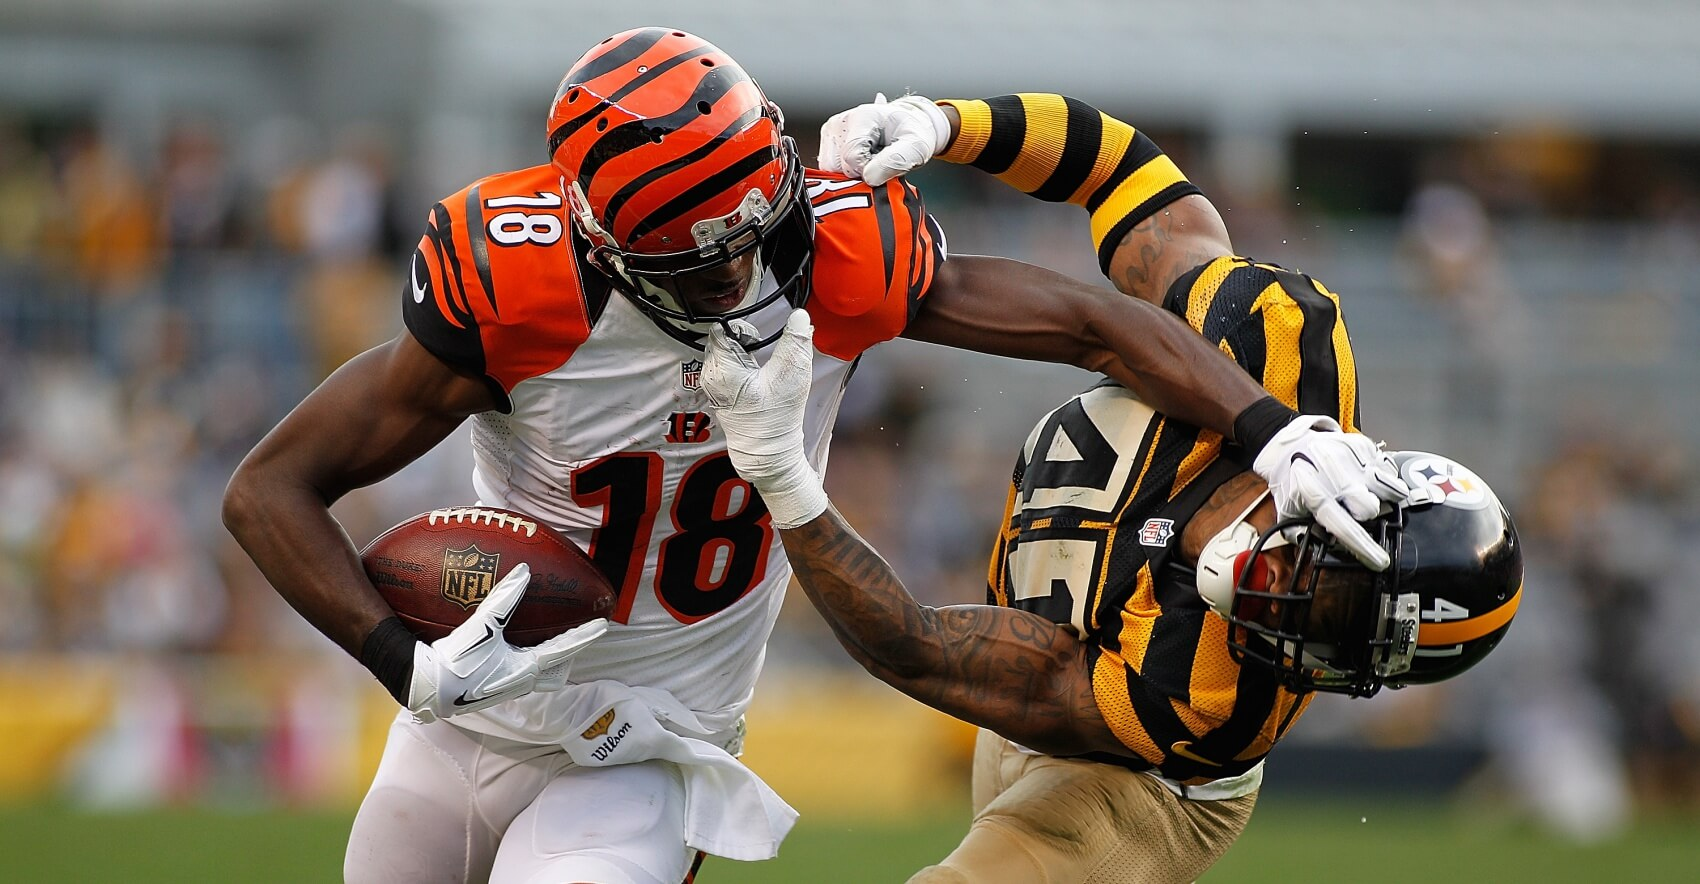 Fantasy Football Strategy: Roster Construction-Based Rankings WR Edition